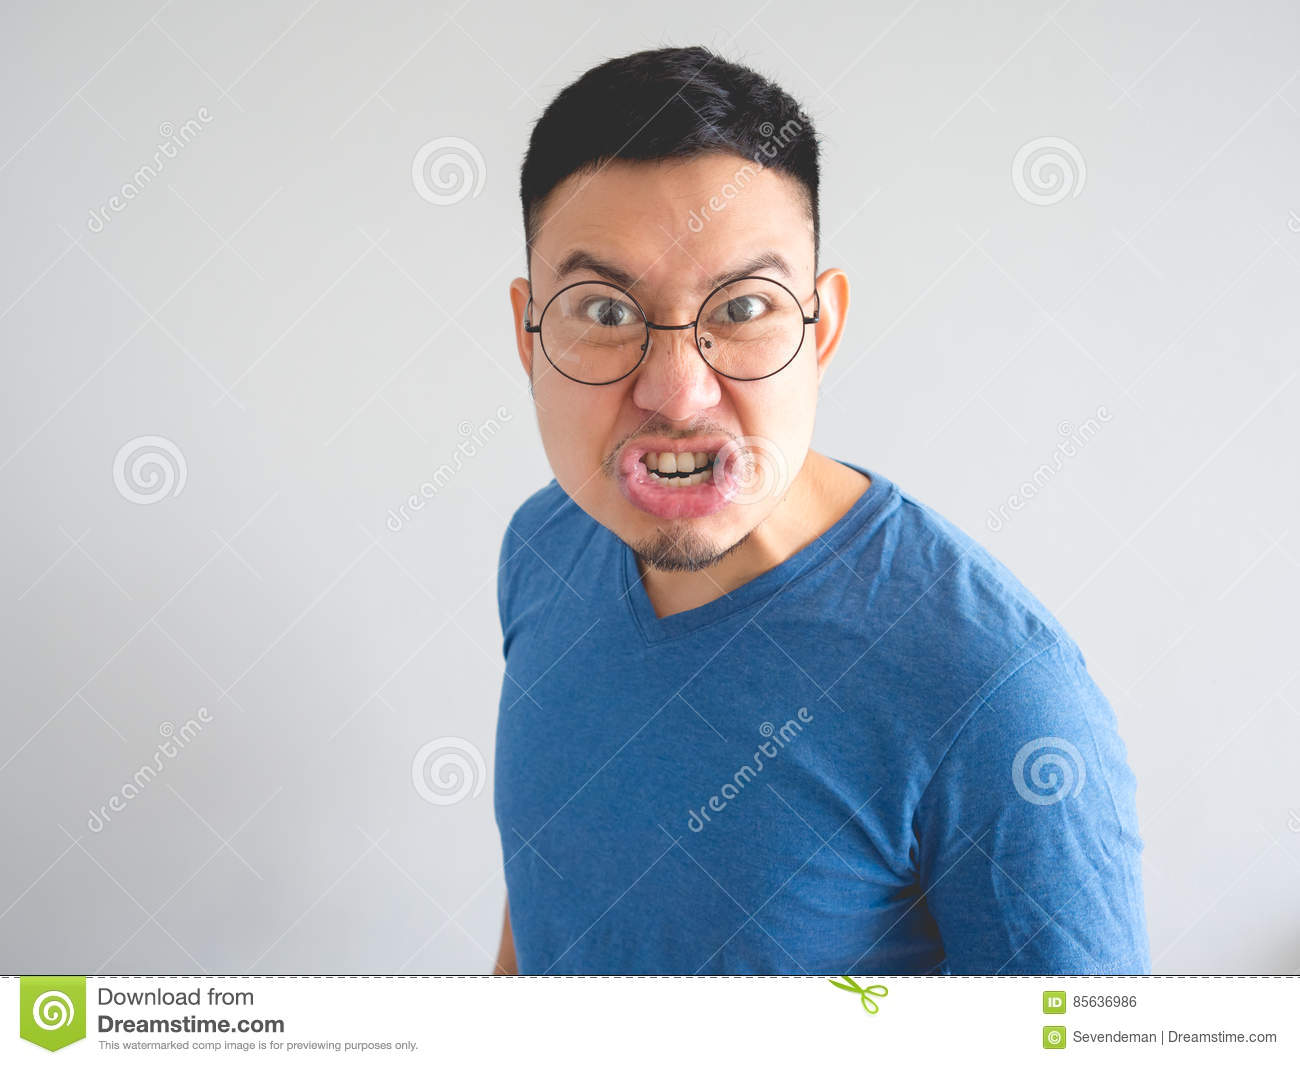 angry asian face - photo #32